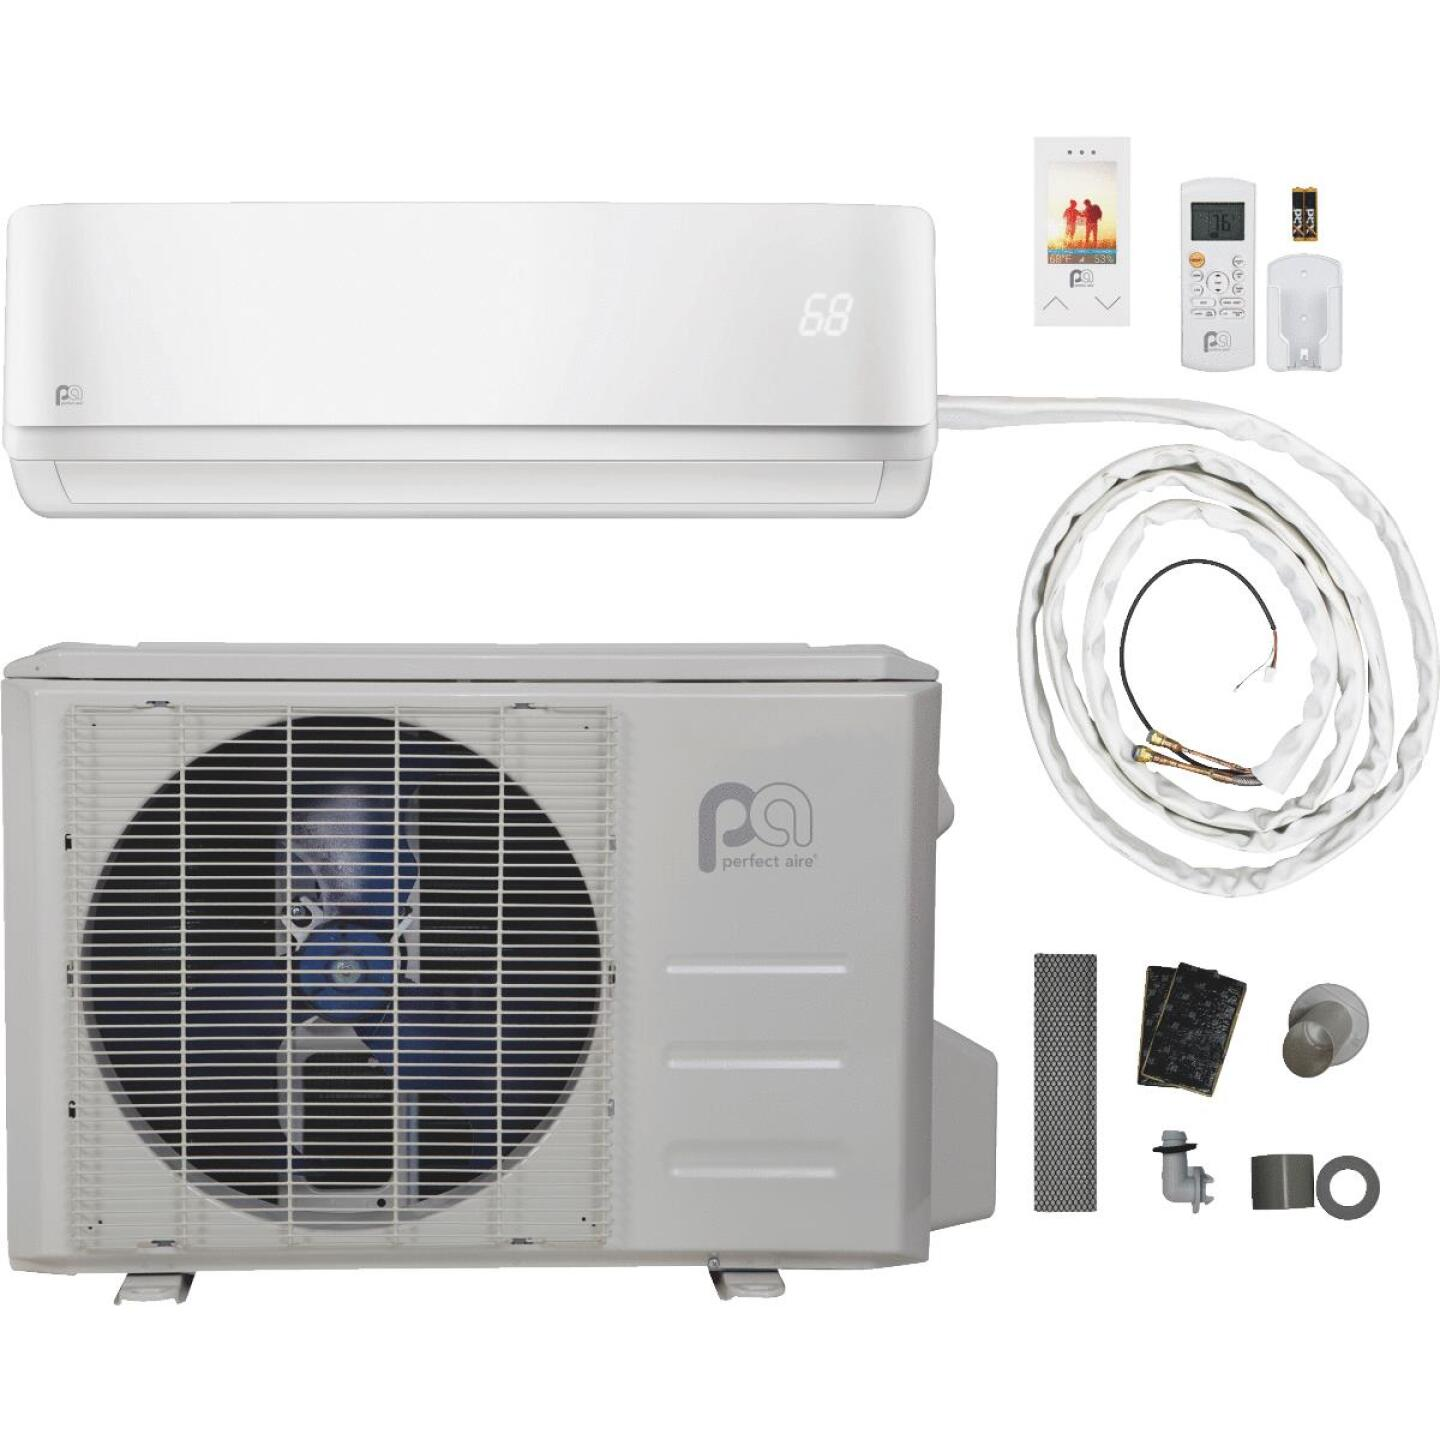 Perfect Aire 12,000 BTU 550 Sq. Ft. Mini-Split Room Air Conditioner with Heating Mode Image 1